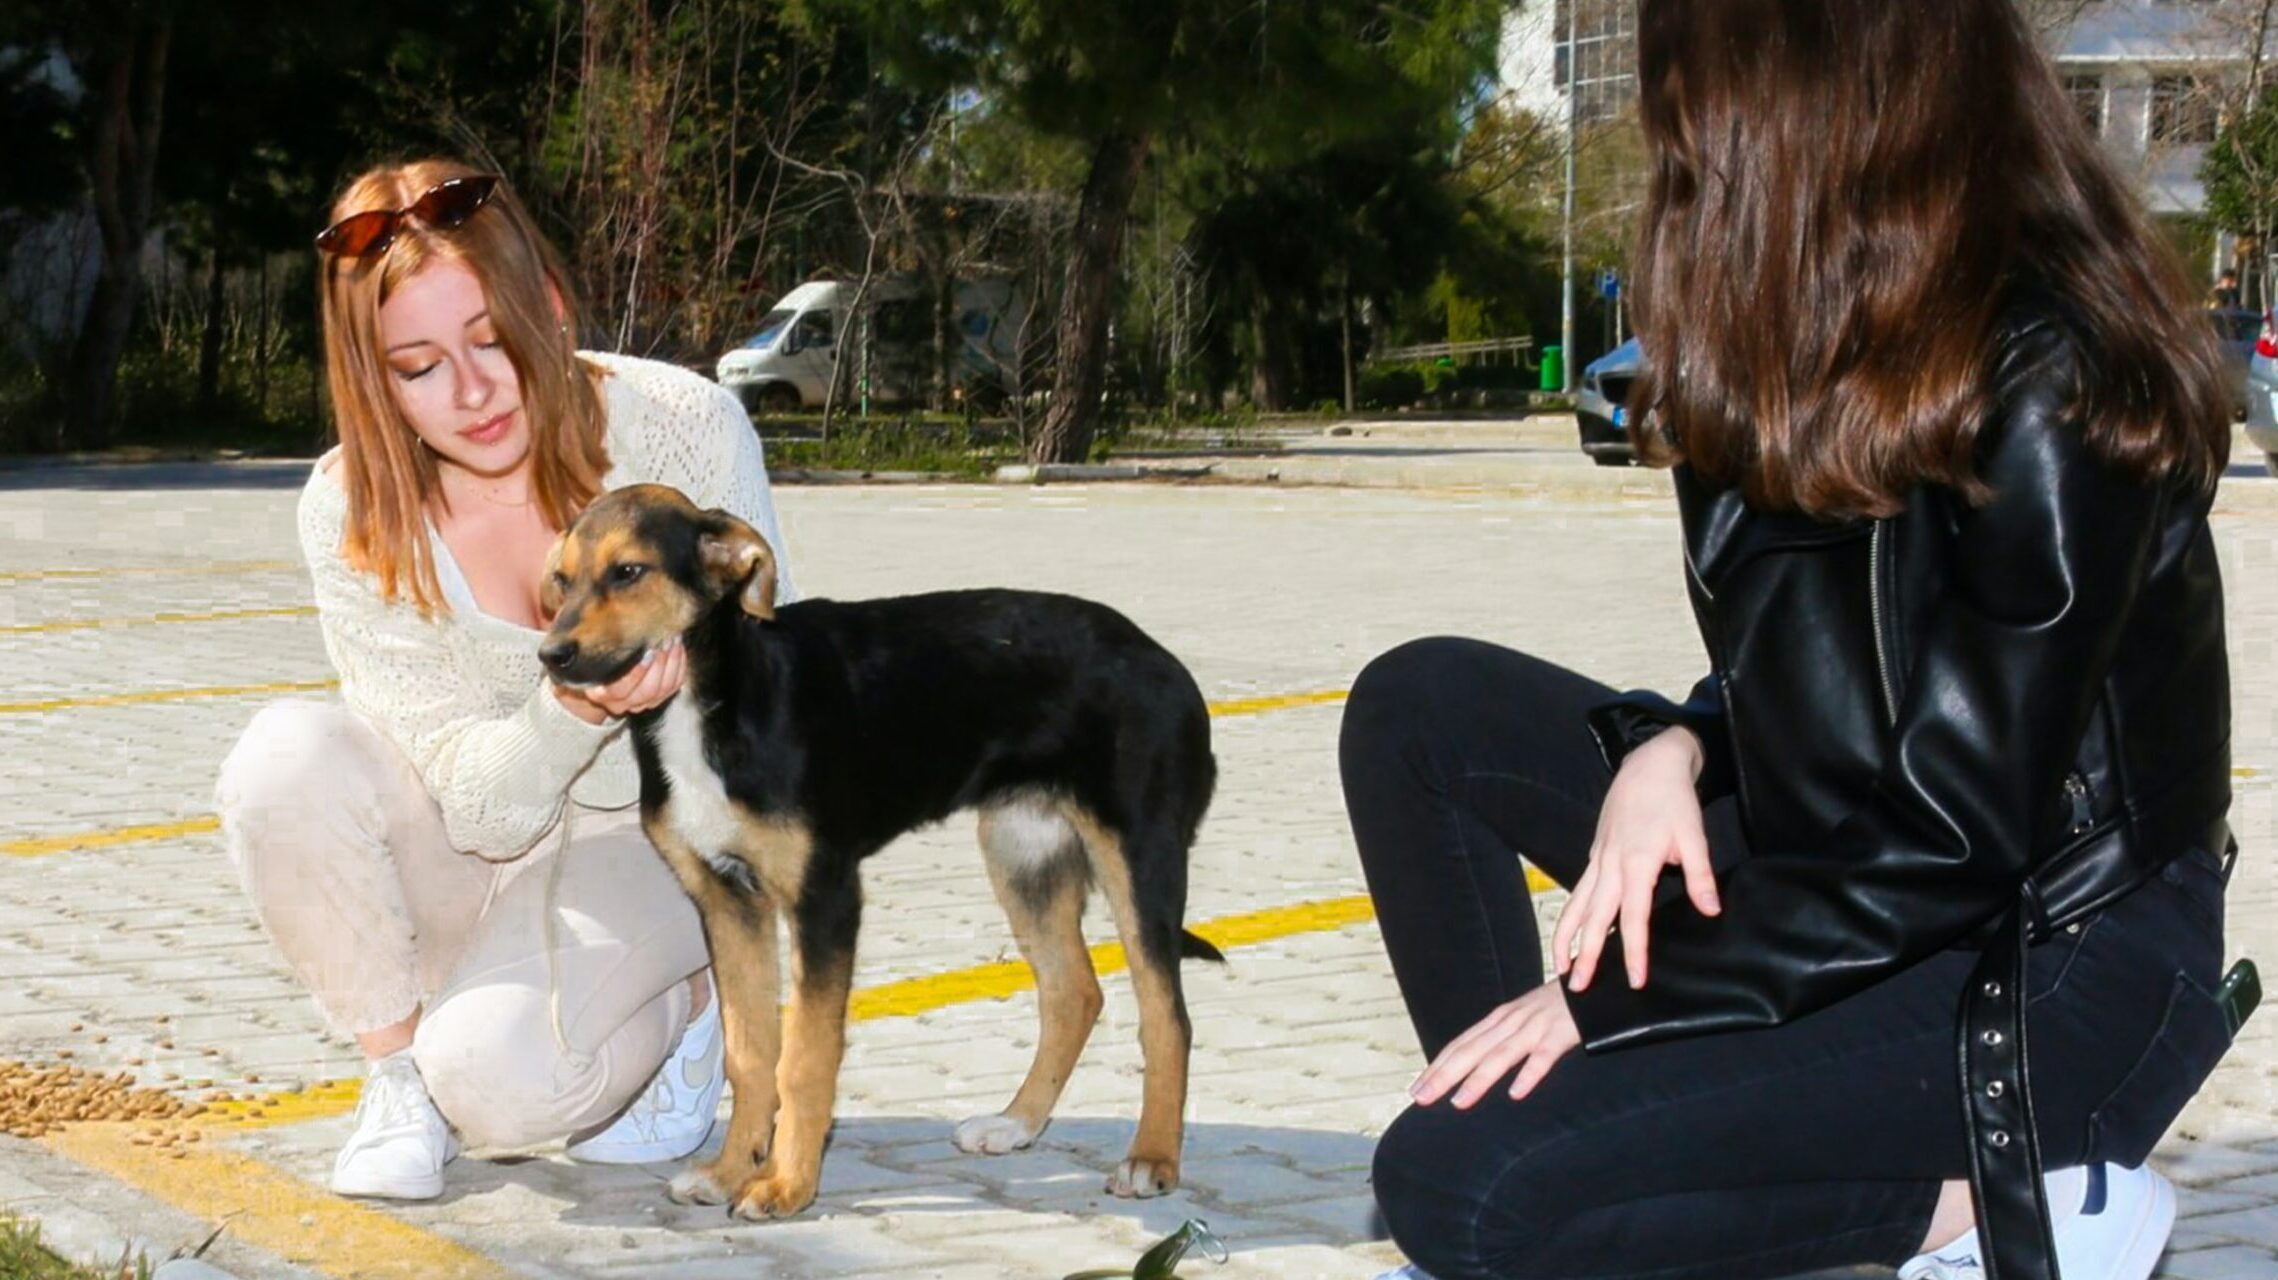 Croquetón: The Event That Seeks To Help Pets Abandoned Out Of Fear